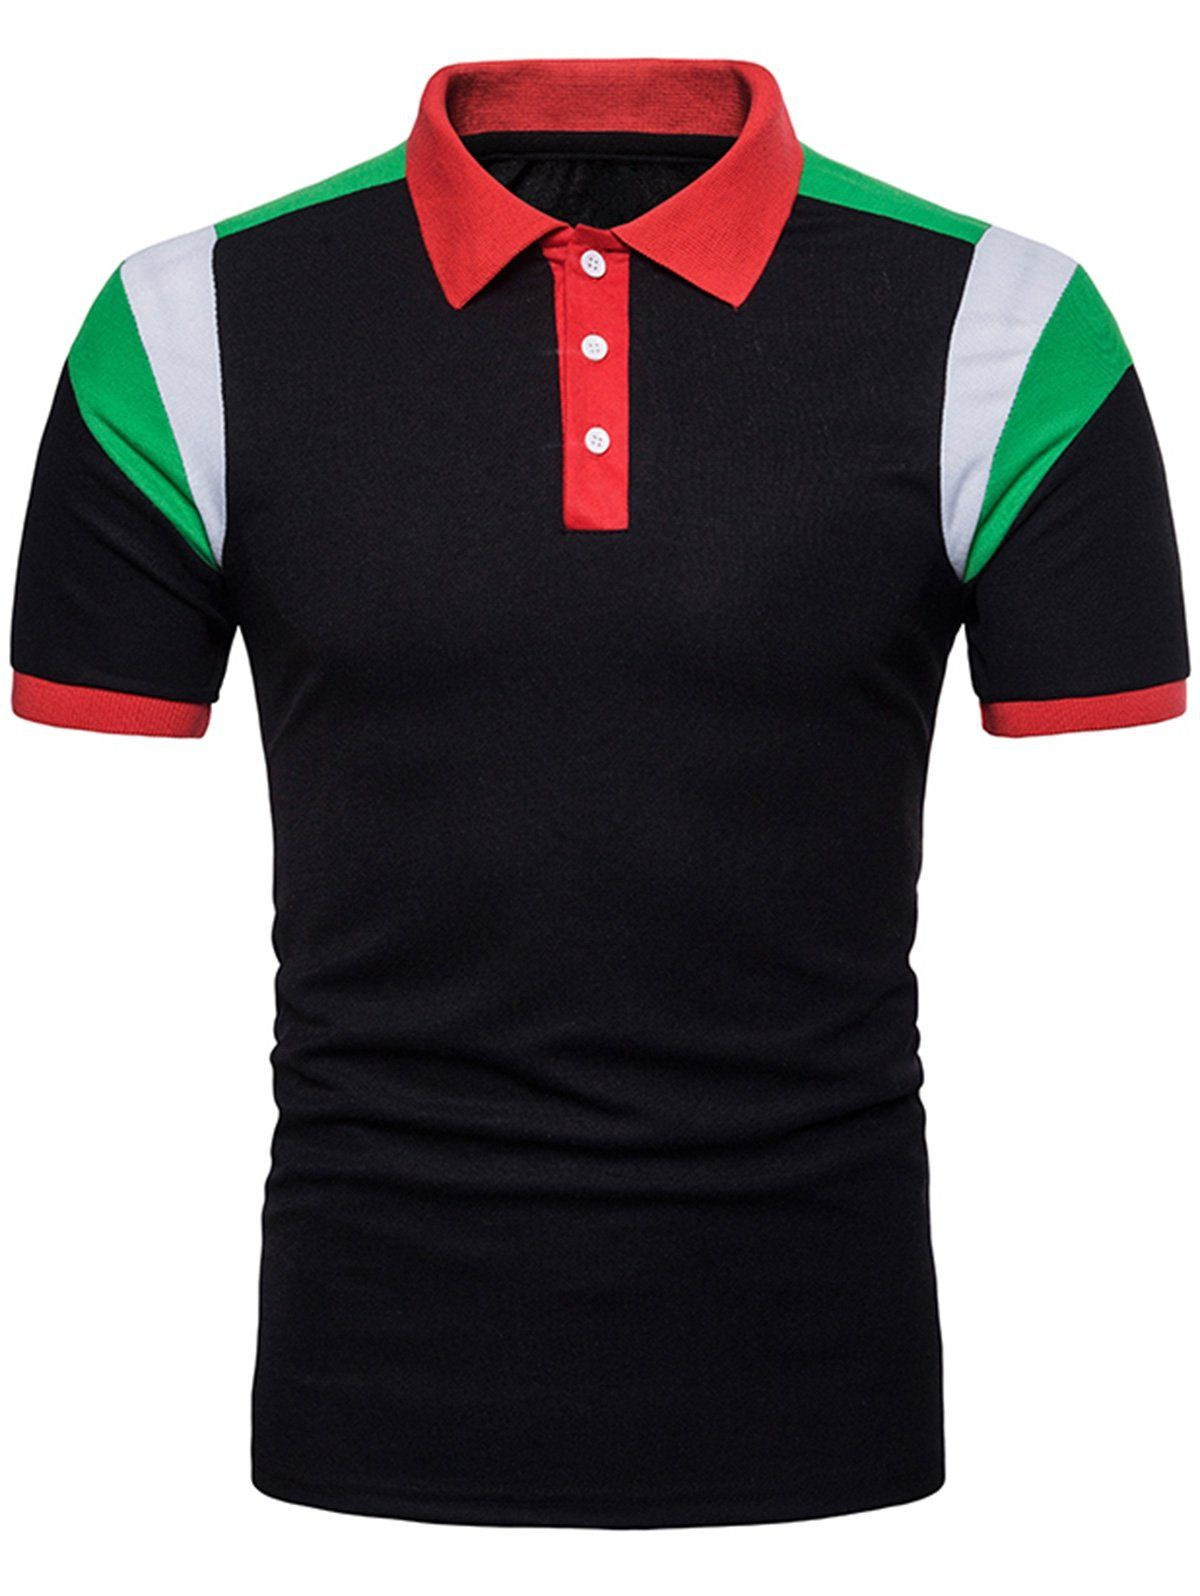 Slimming Short Sleeve Color Block Polo Collar T Shirt In 2018